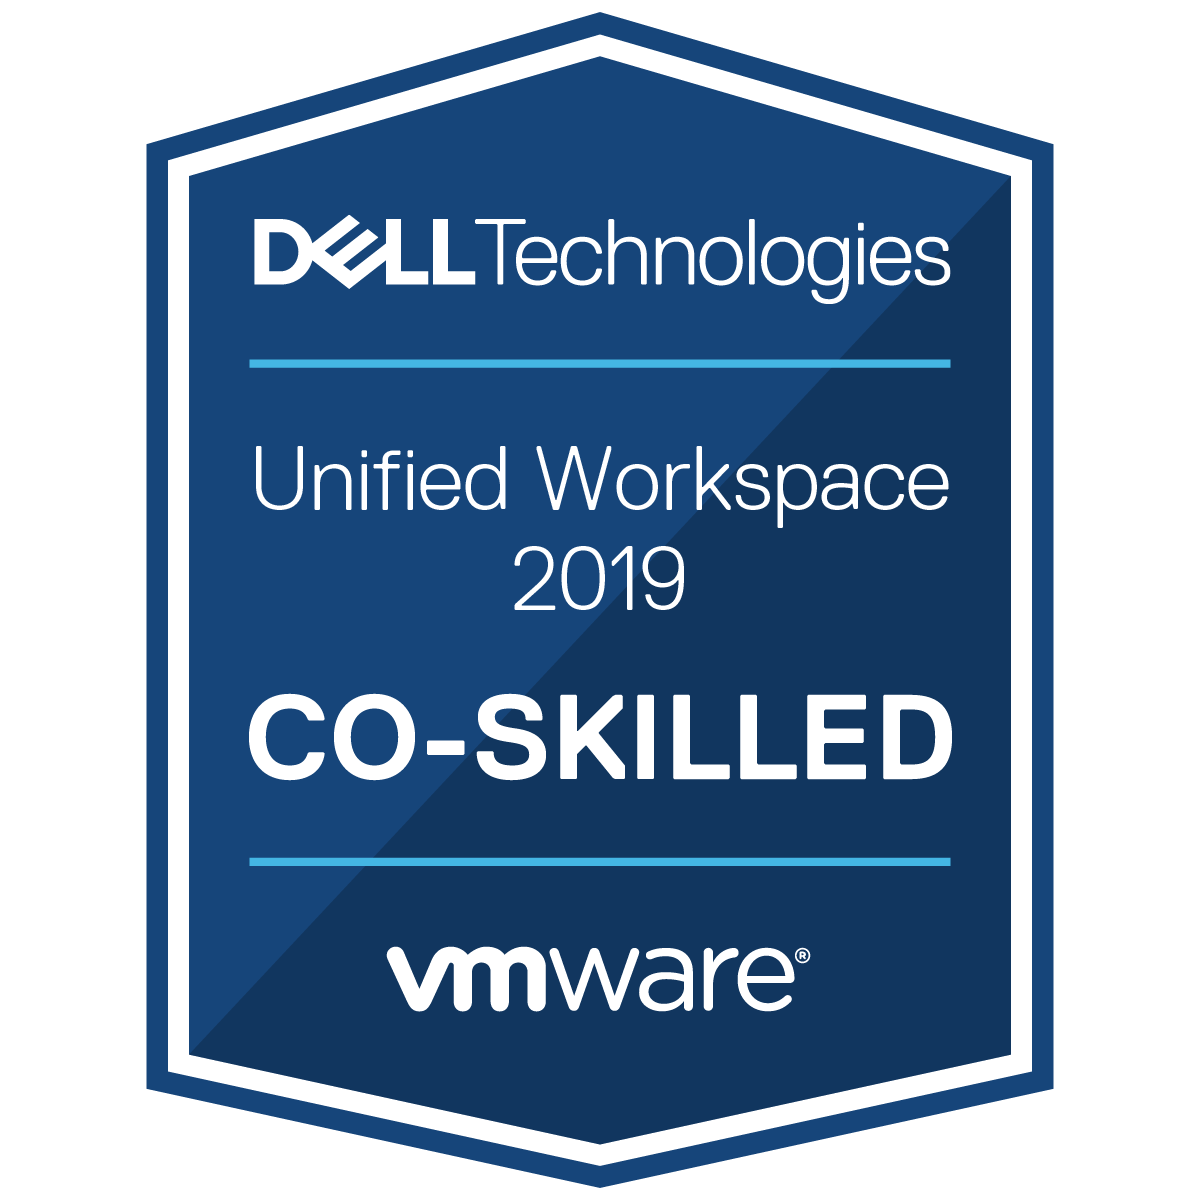 Dell Technologies Unified Workspace 2019